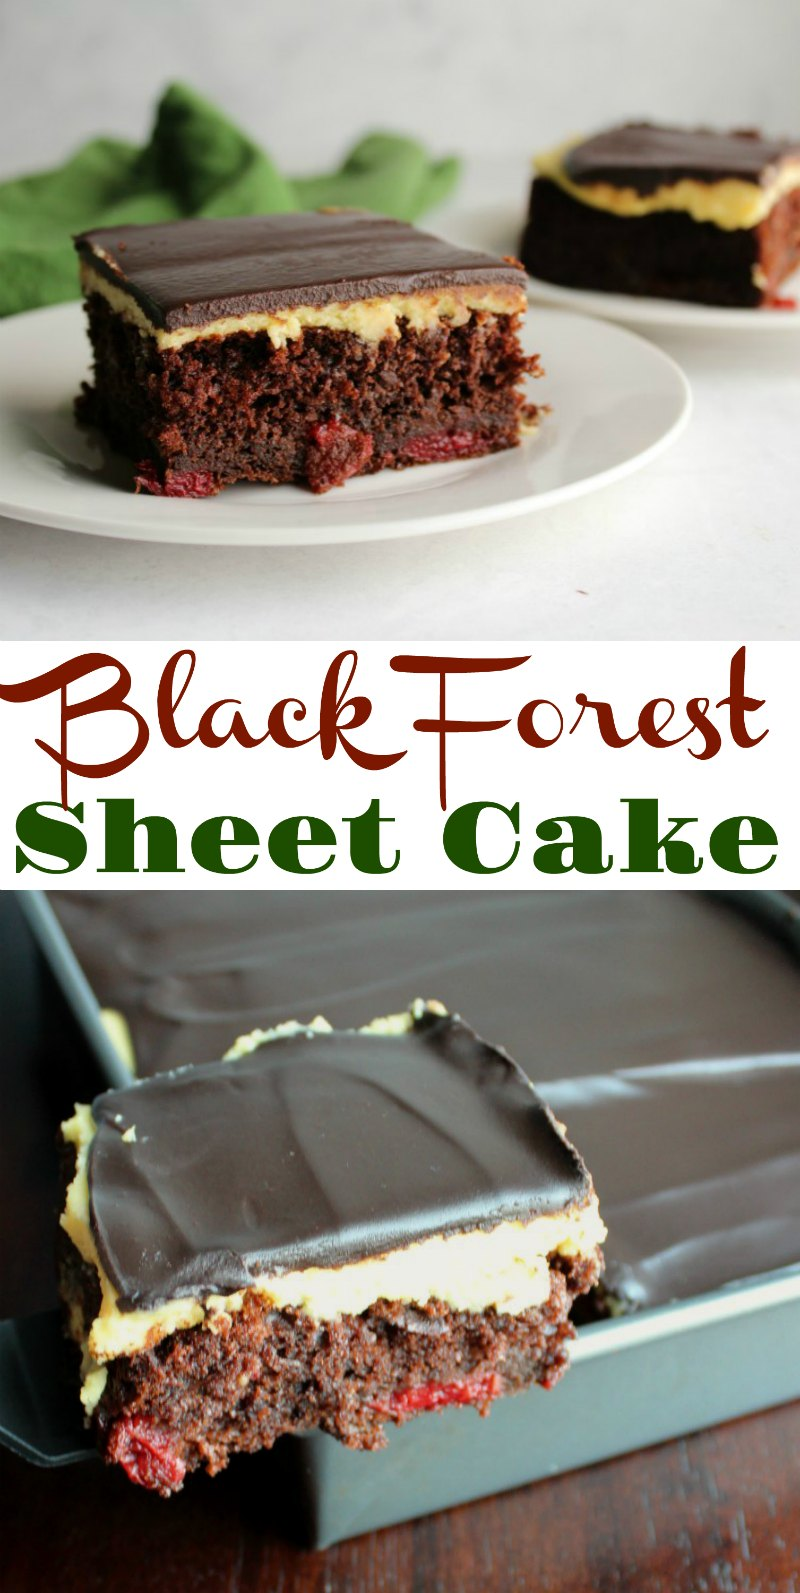 This simplified version of black forest sheet cake still feels ultra luxe. Moist chocolate cake studded with cherries, creamy vanilla German buttercream and a layer of ganache come together to make your dessert dreams come true!